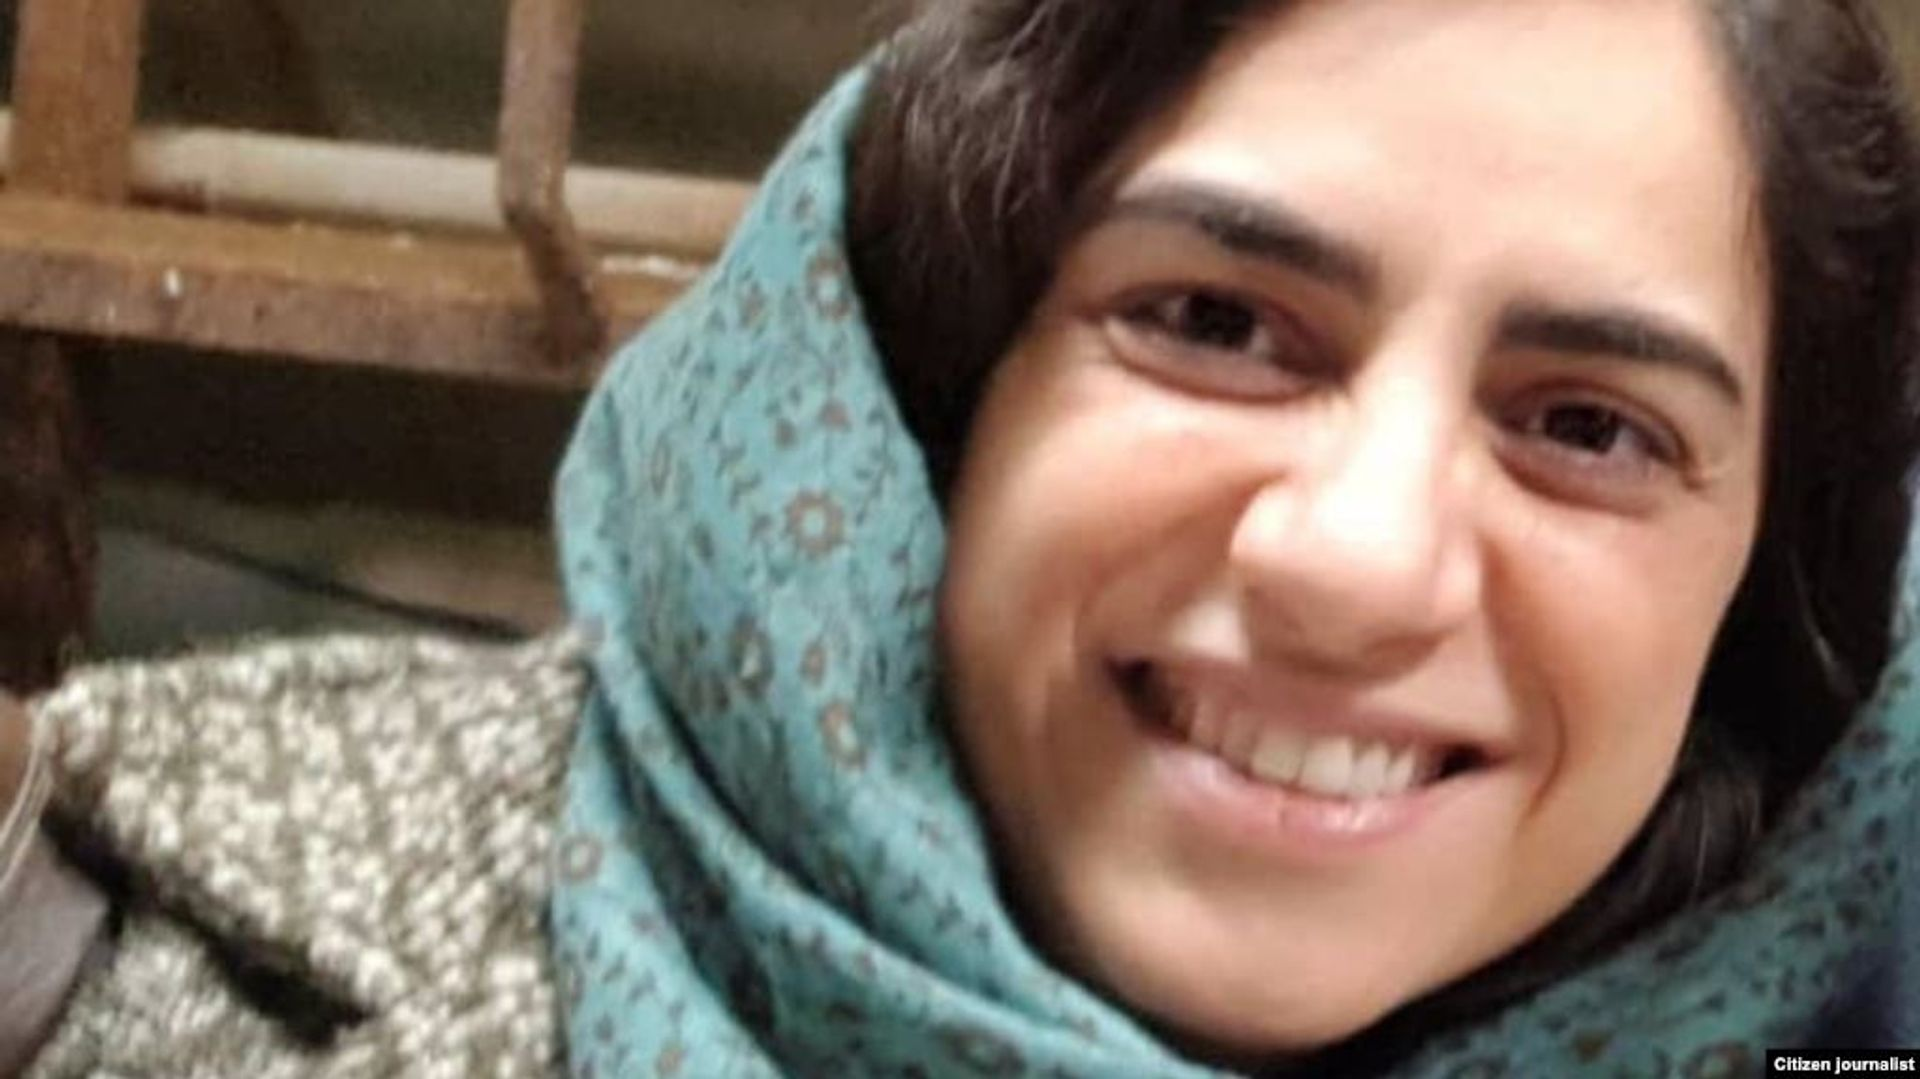 Aras Amiri was arrested in March 2018 while visiting her elderly grandmother in Iran Twitter